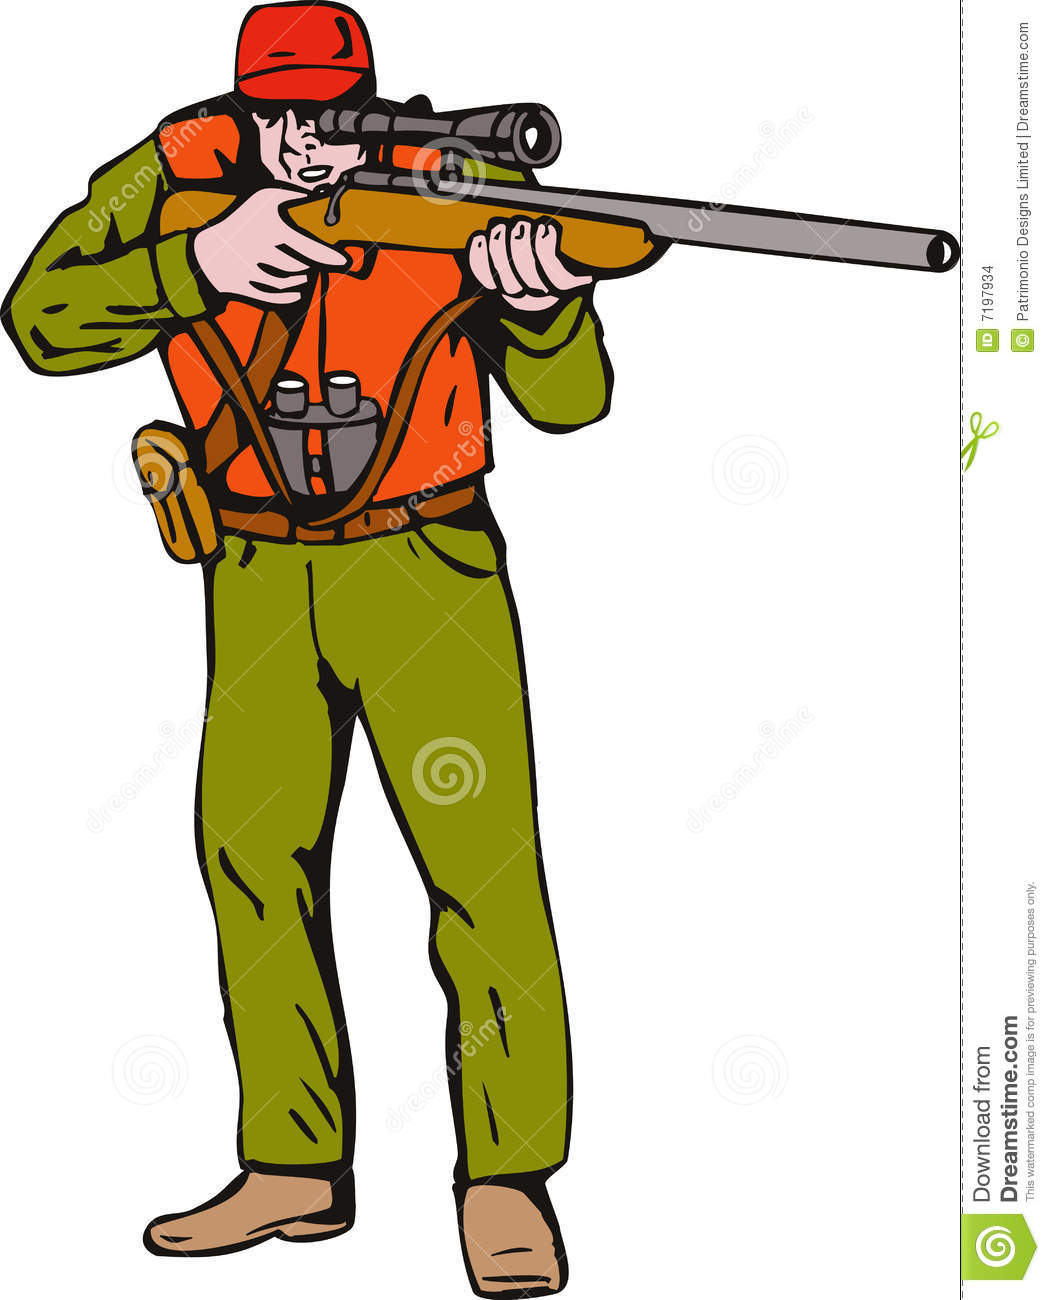 Hunter transparent clip arts. Free hunting clipart images